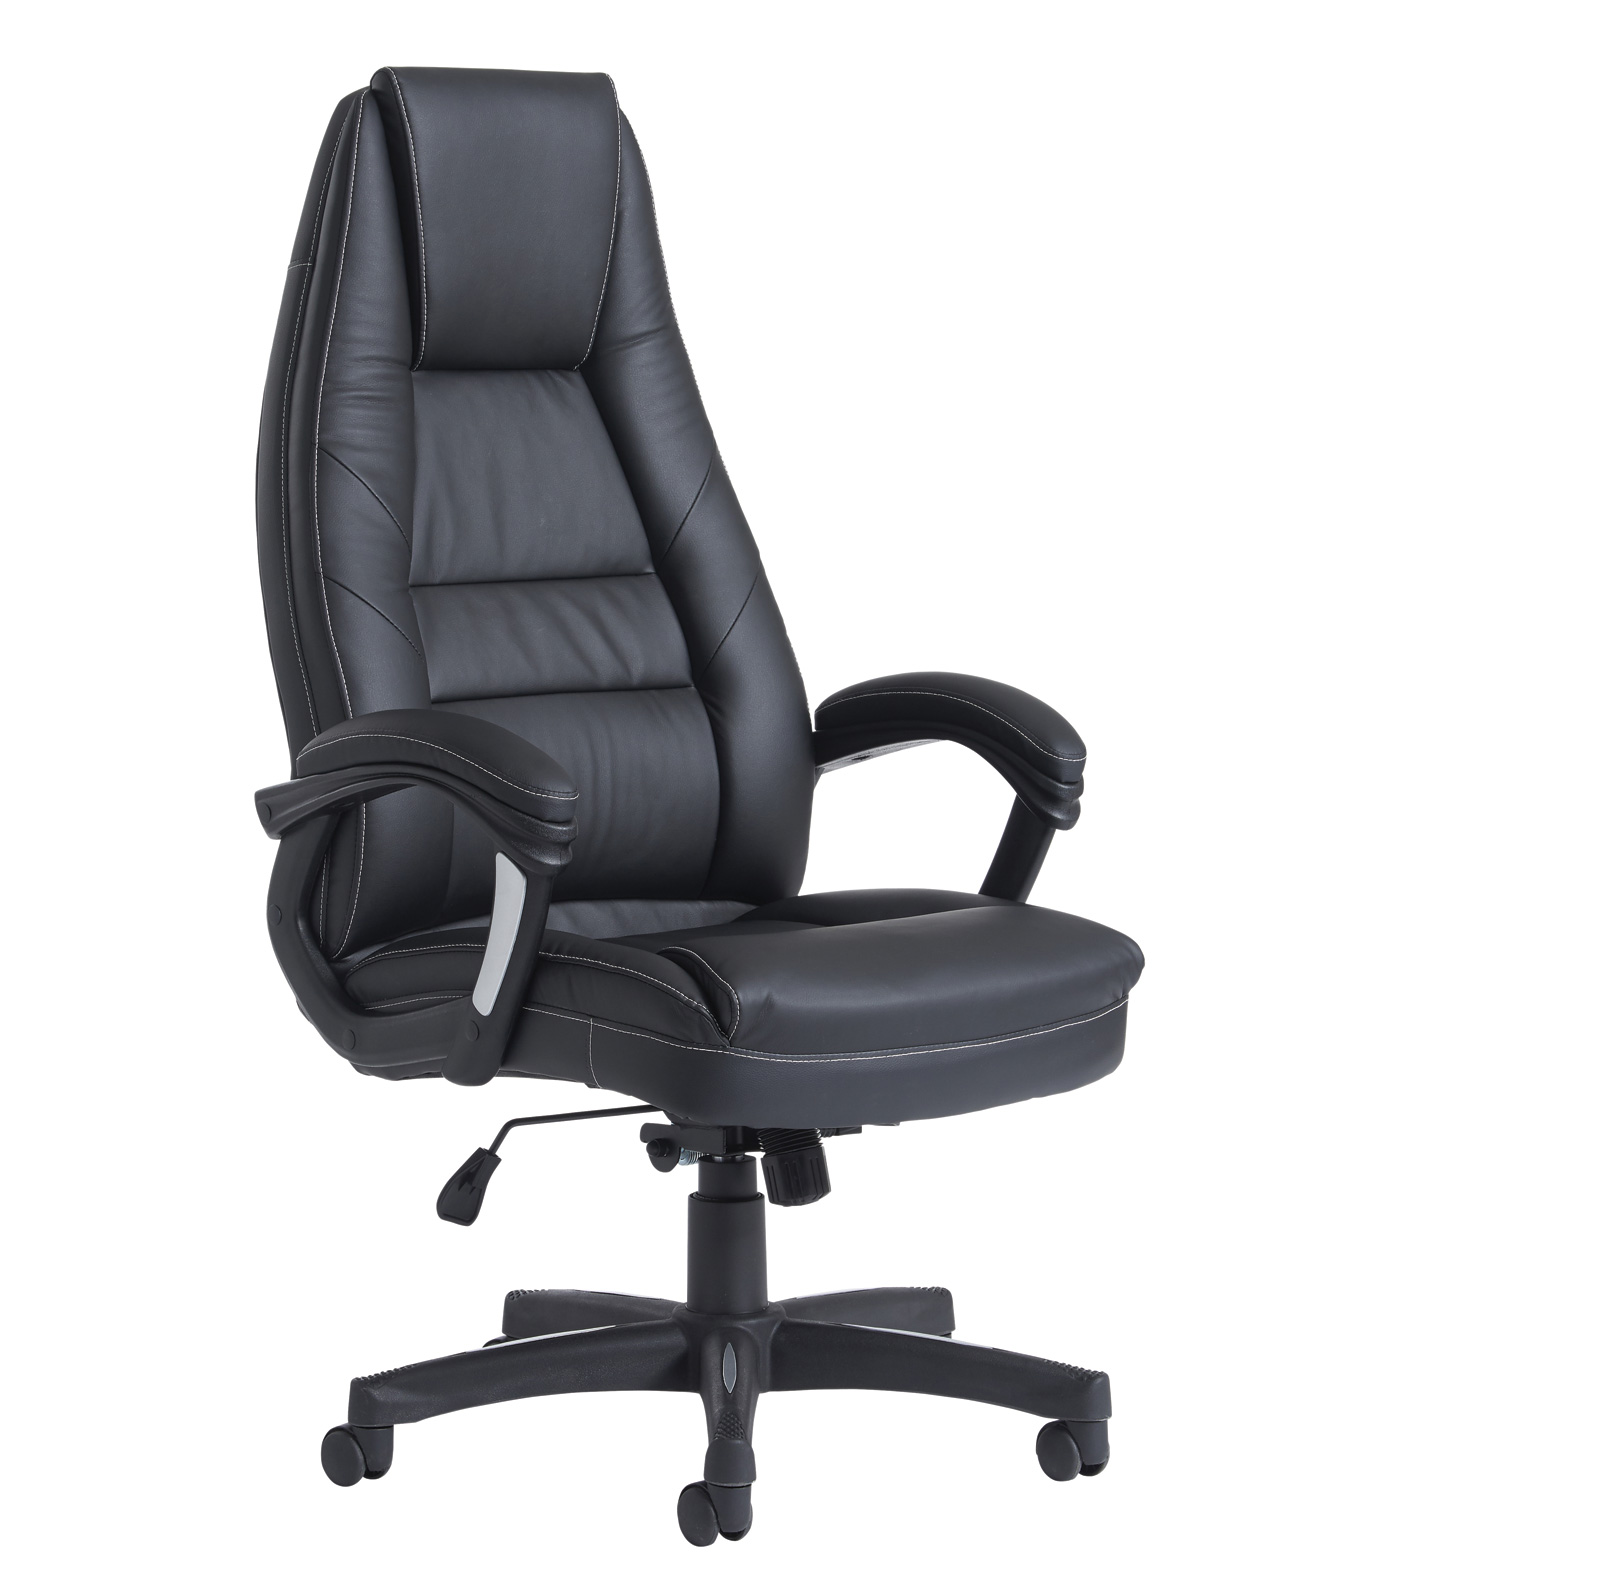 Noble managers chair - black